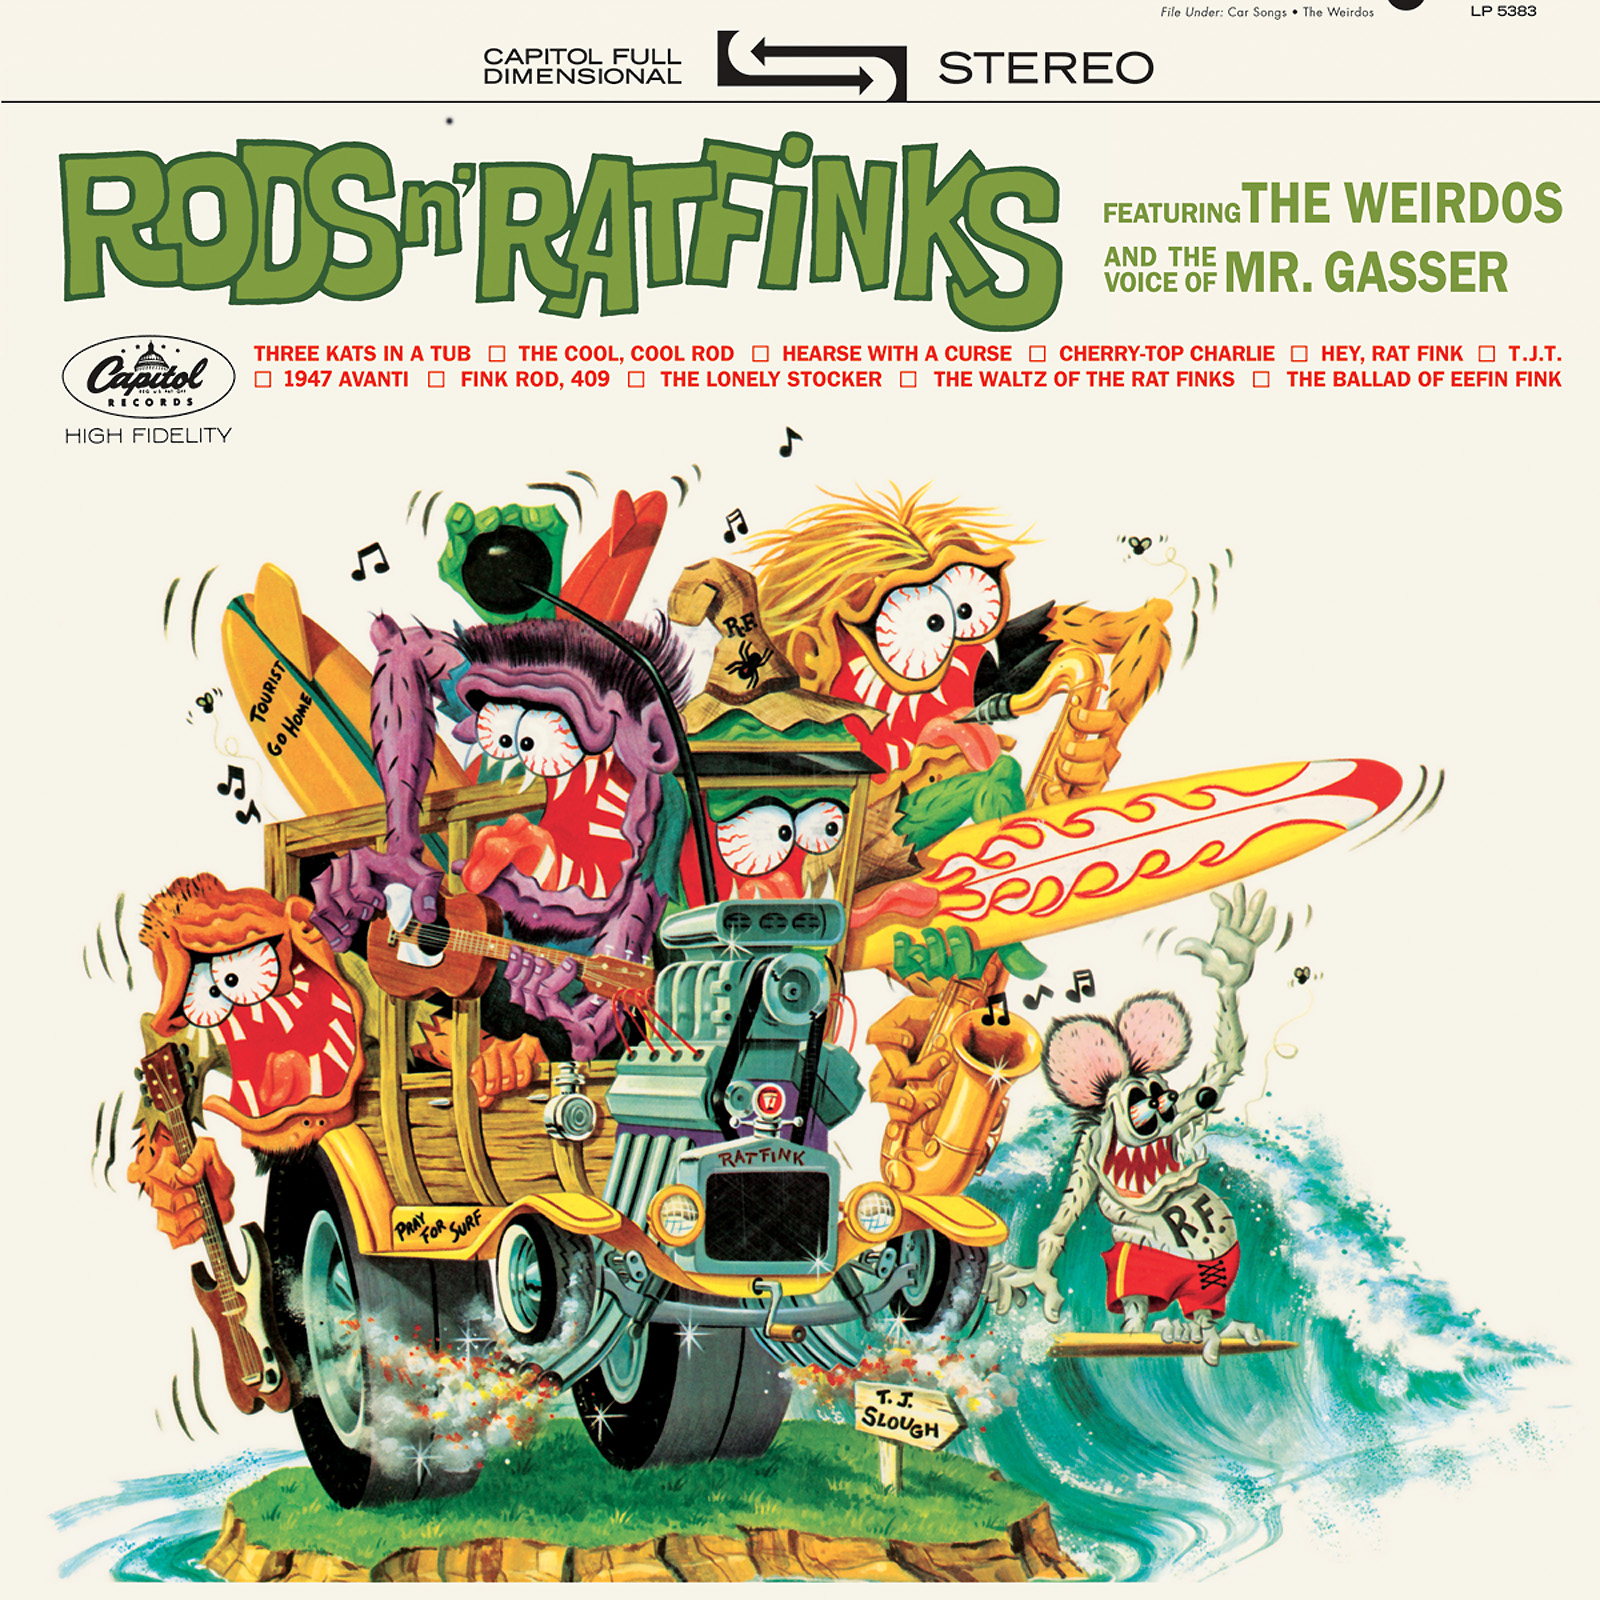 Mr. Gasser & the Weirdos - Rods n Ratfinks CD -BLACK FRIDAY- Limited Edition